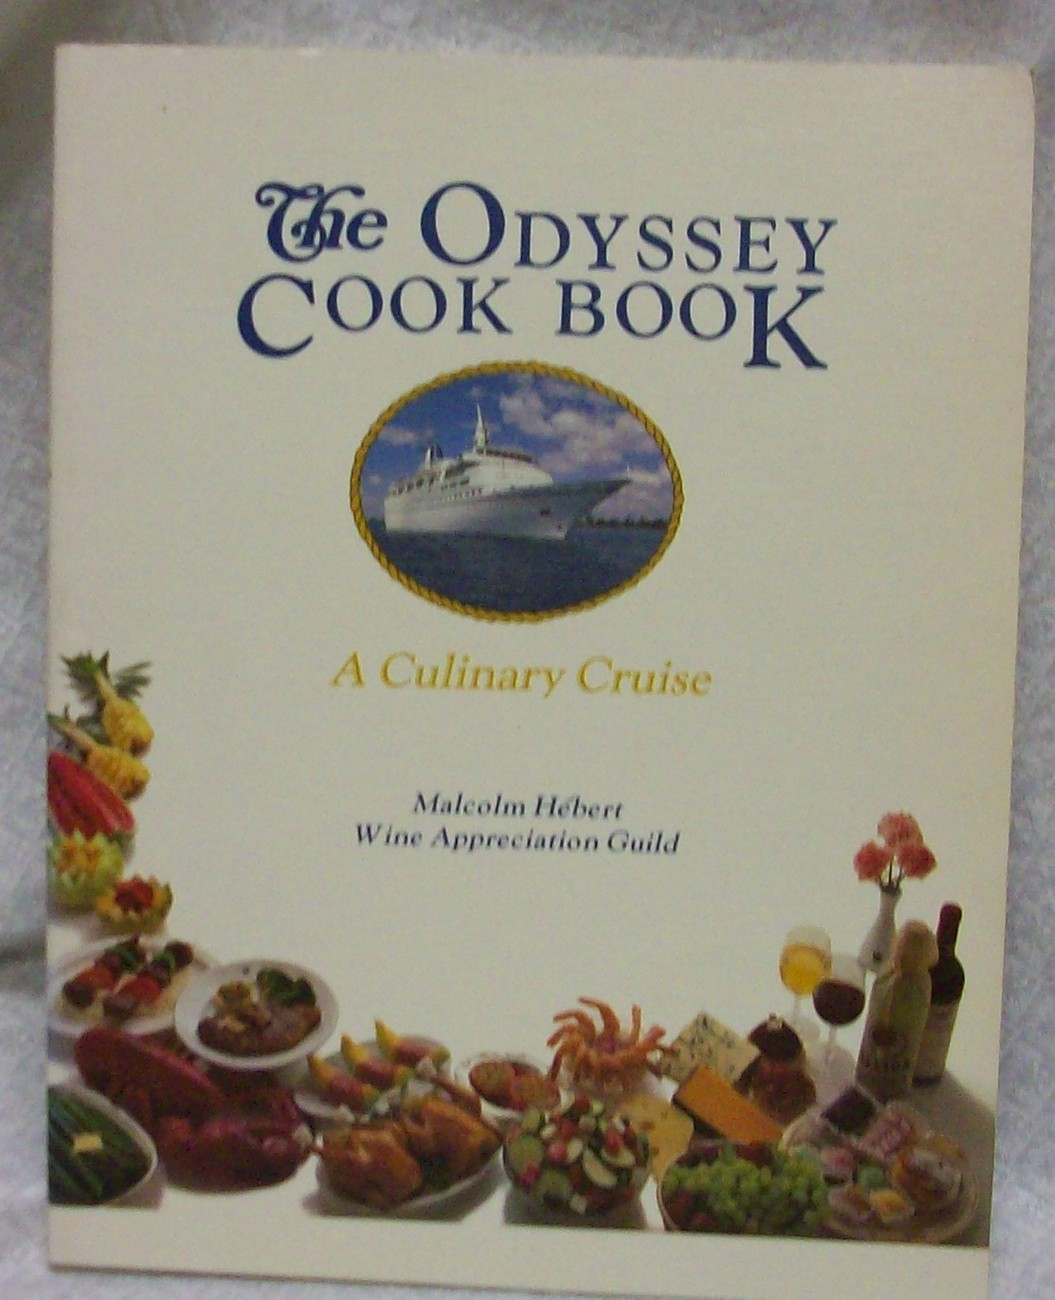 The Odyssey Cook Book by Herbert Malcolm Signed